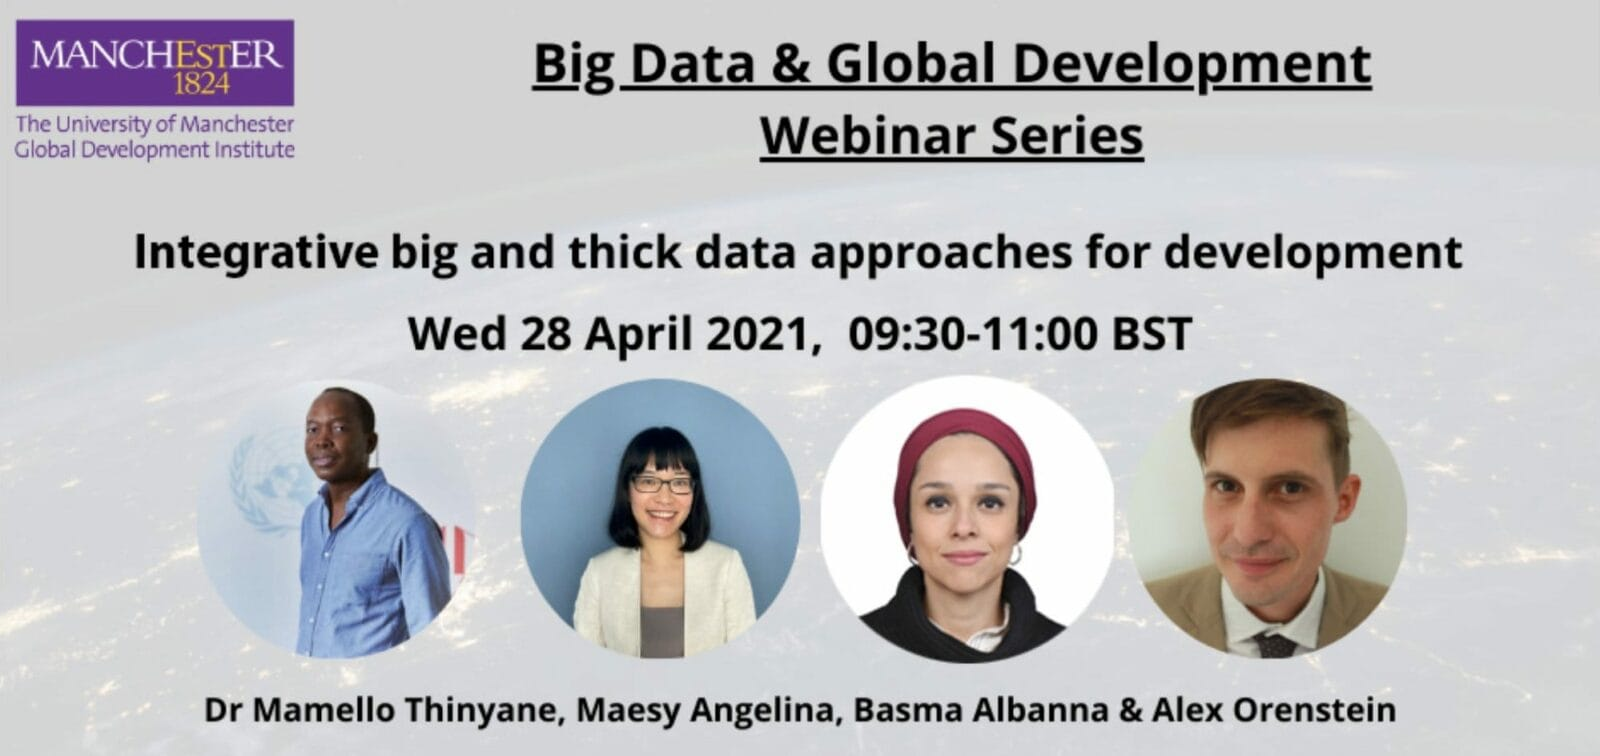 Integrative big and thick data approaches for development 3